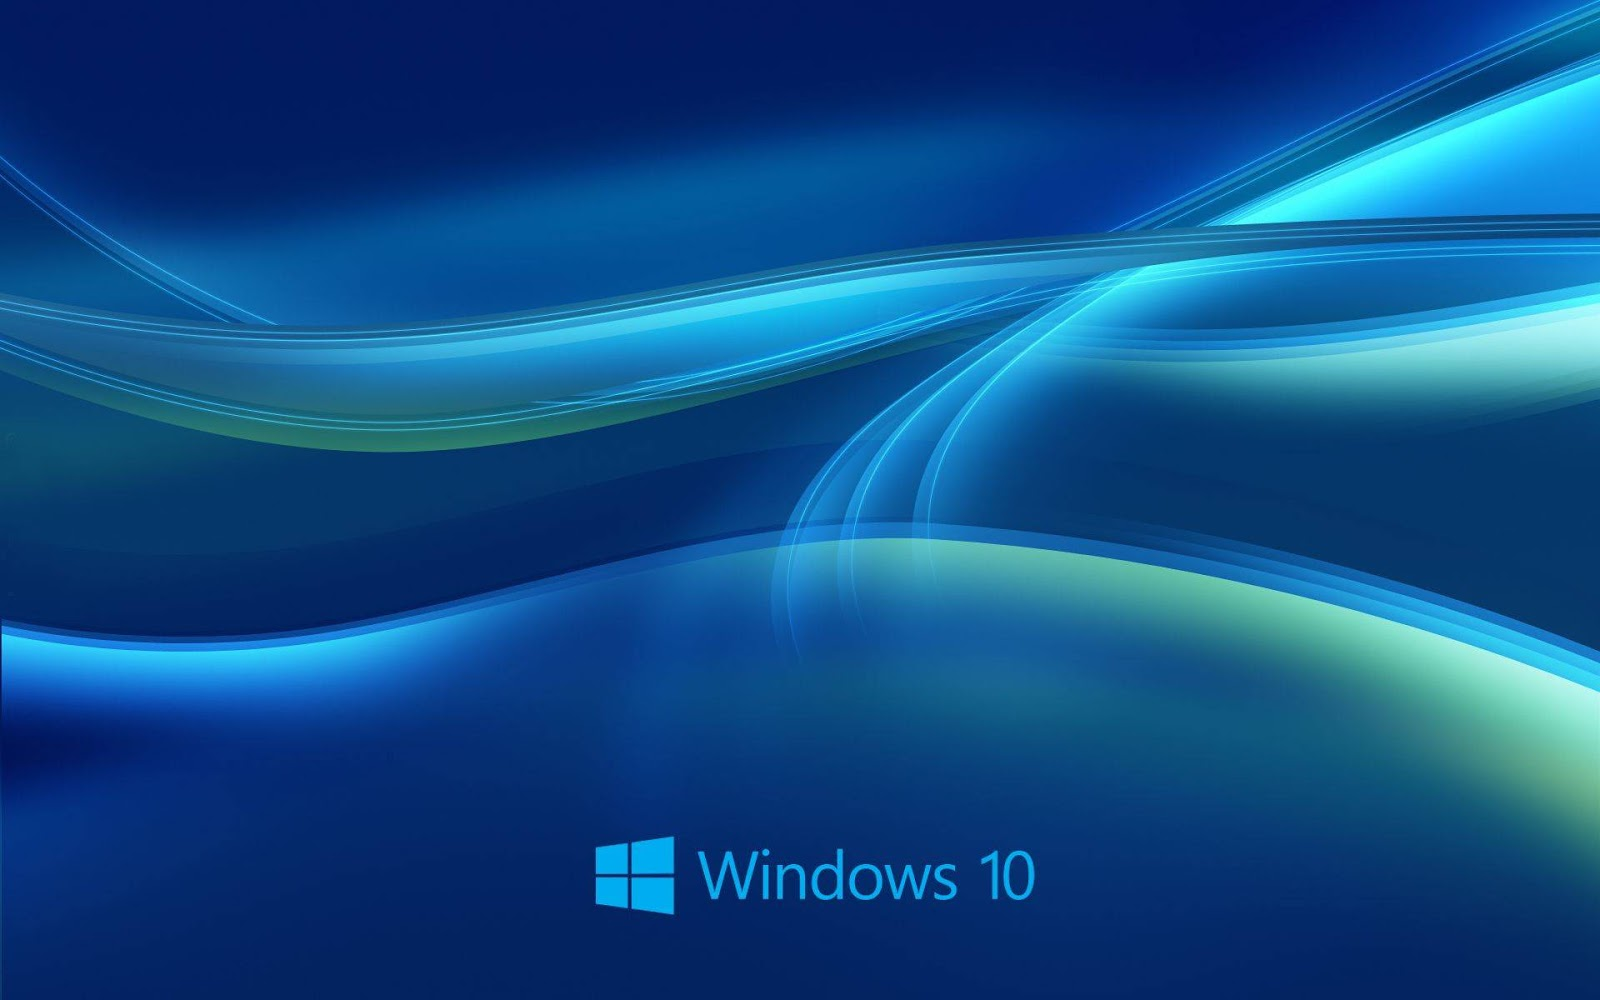 window10 - backgrounds pic